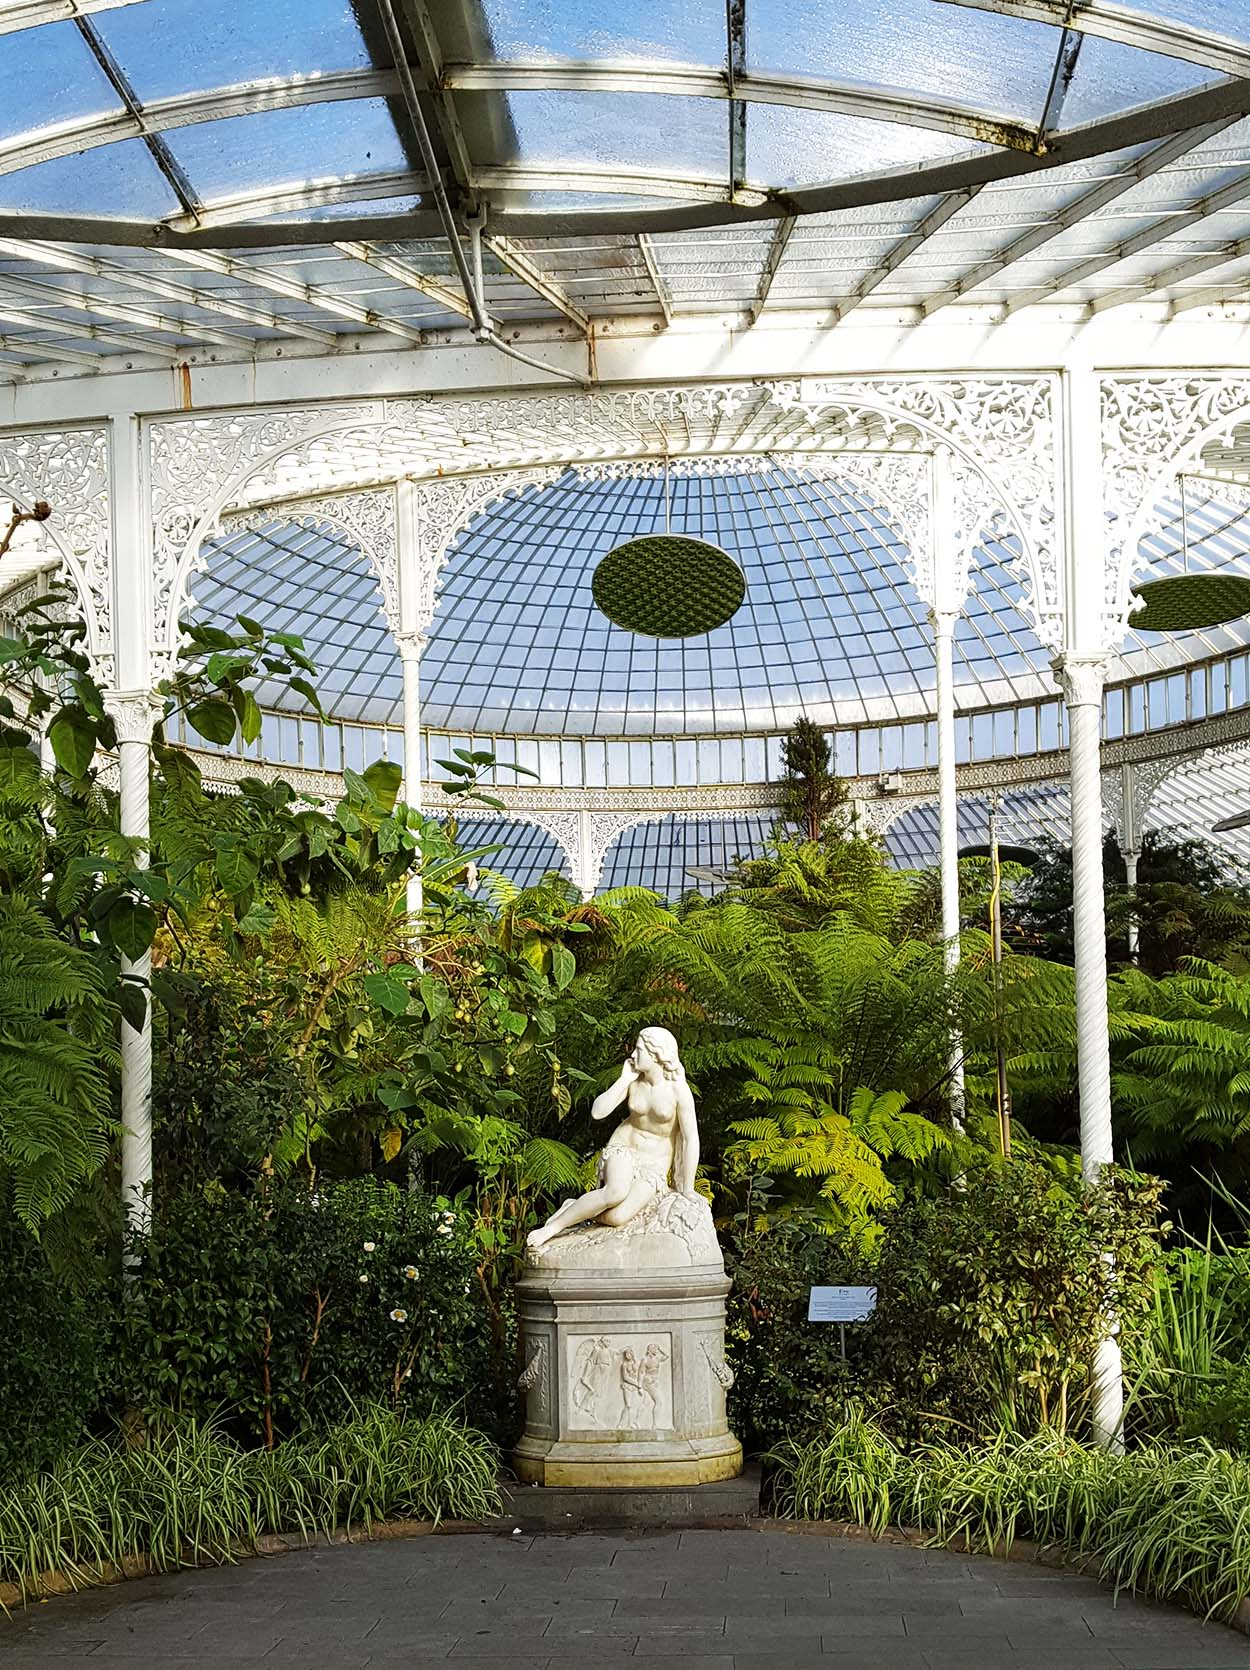 Finding inspiration at the Kibble Palace, Glasgow